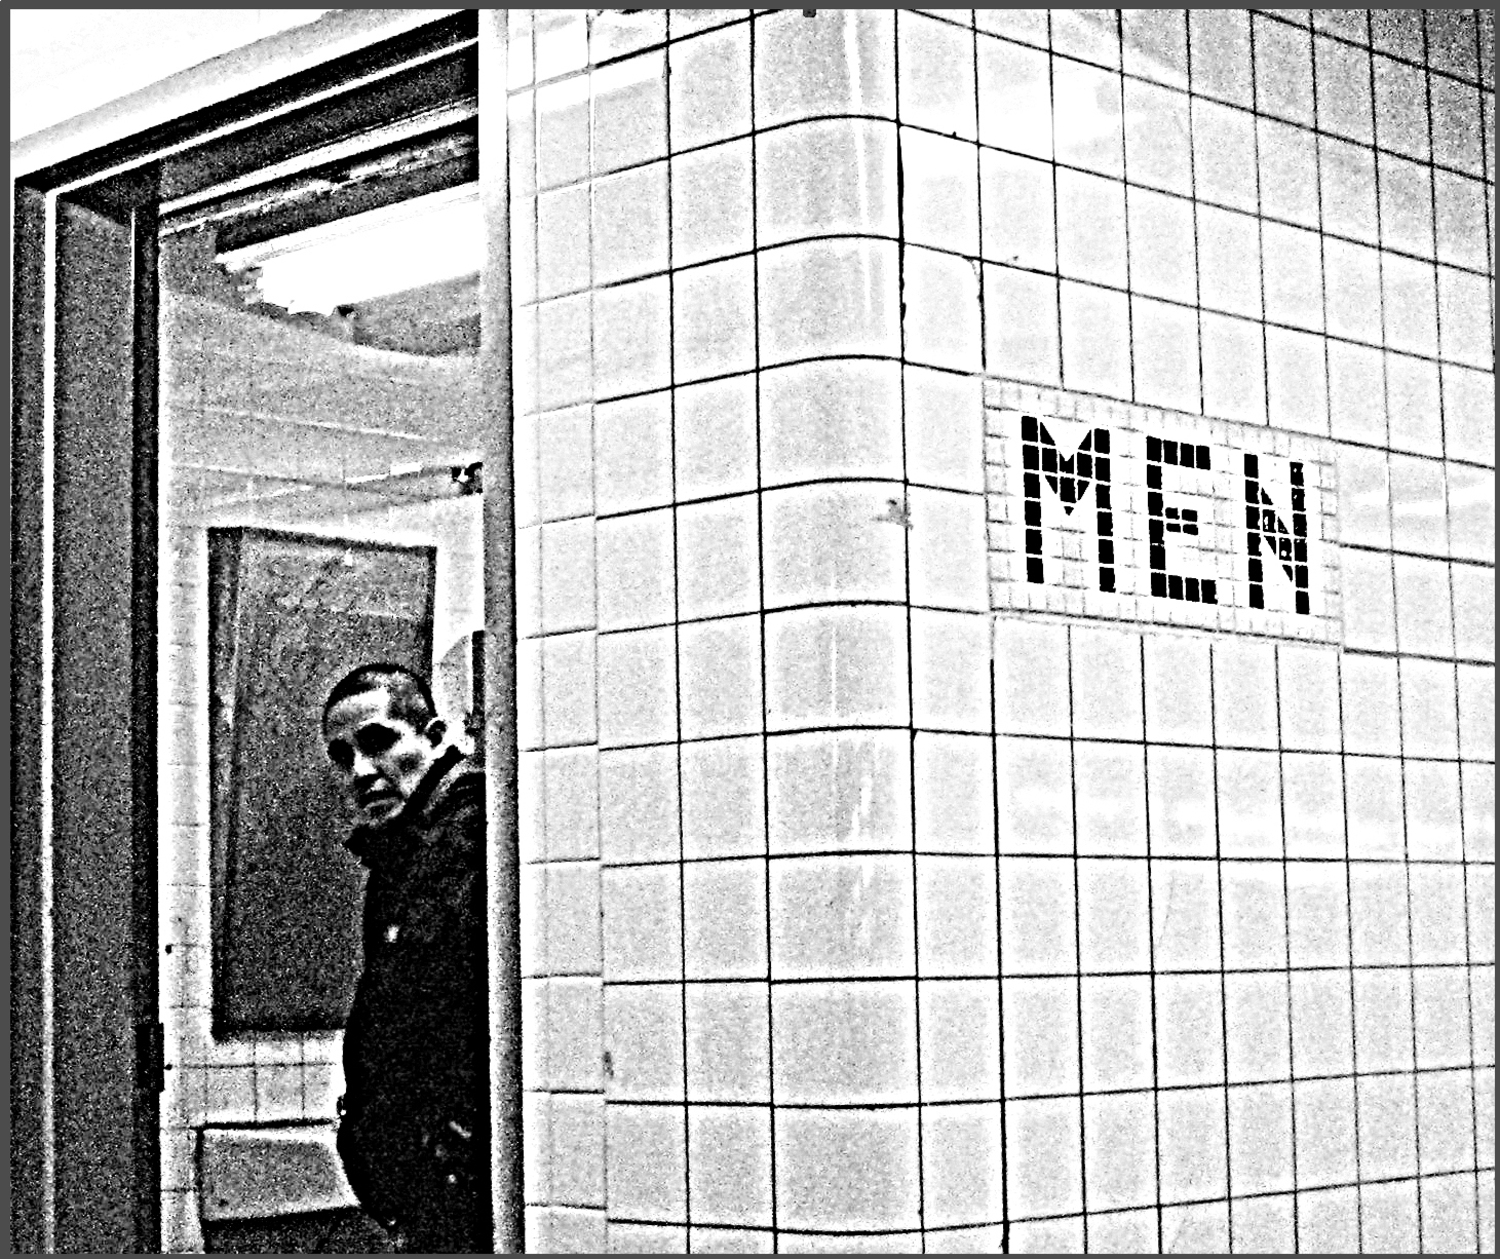 NYC Subway Men's Room